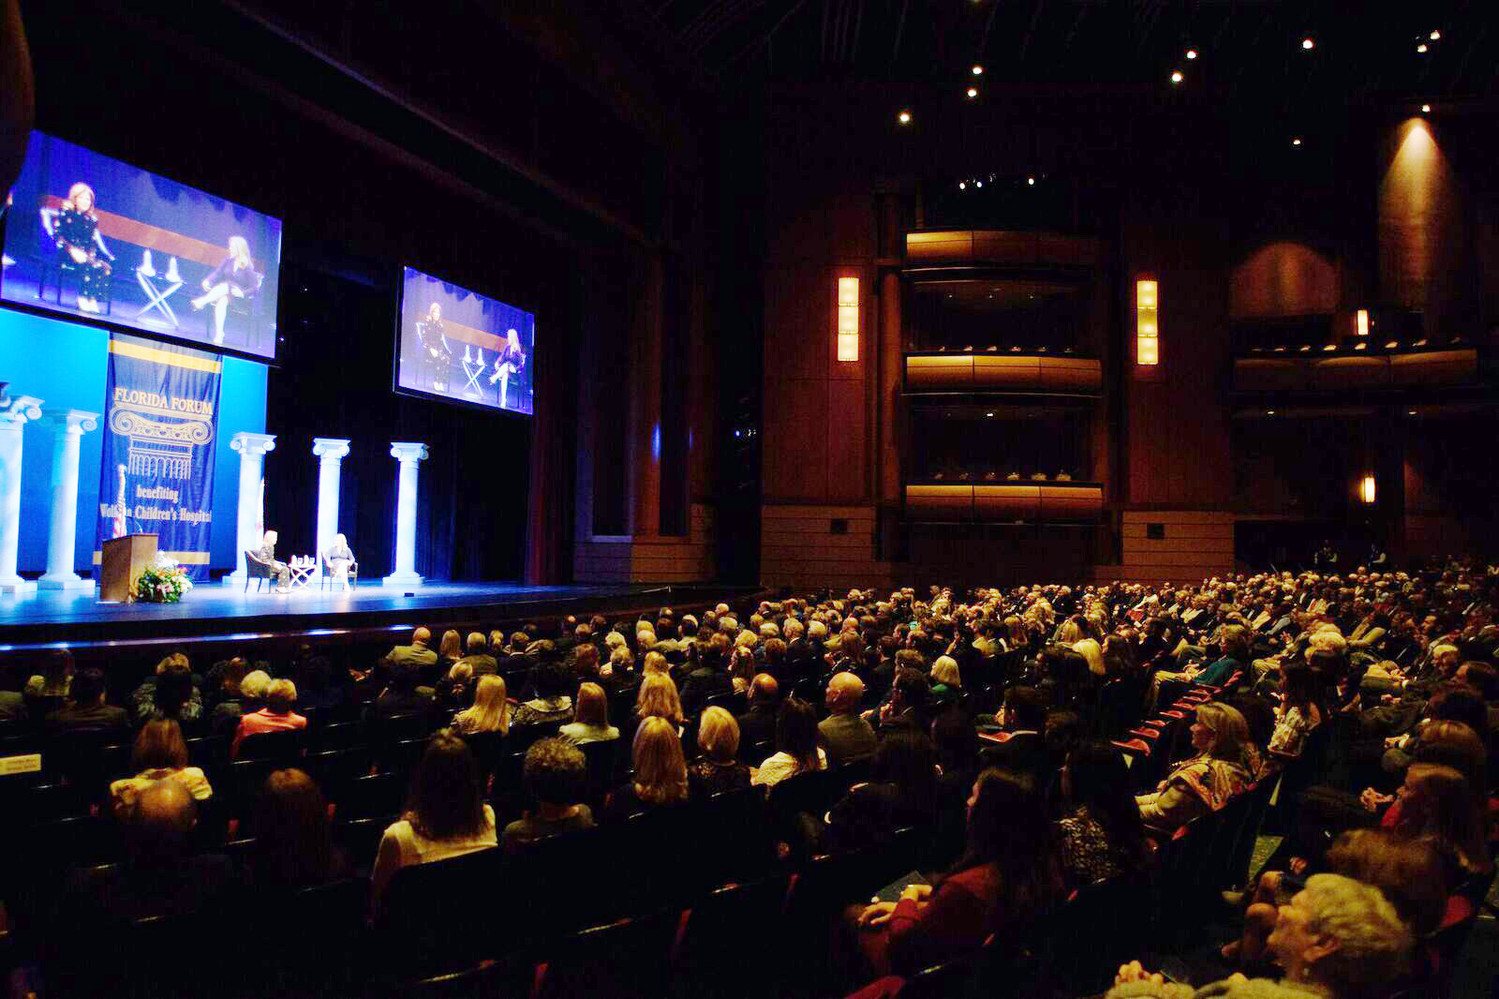 Over 1,300 guests attended Kennedy's address at the Times-Union Center for the Performing Arts.